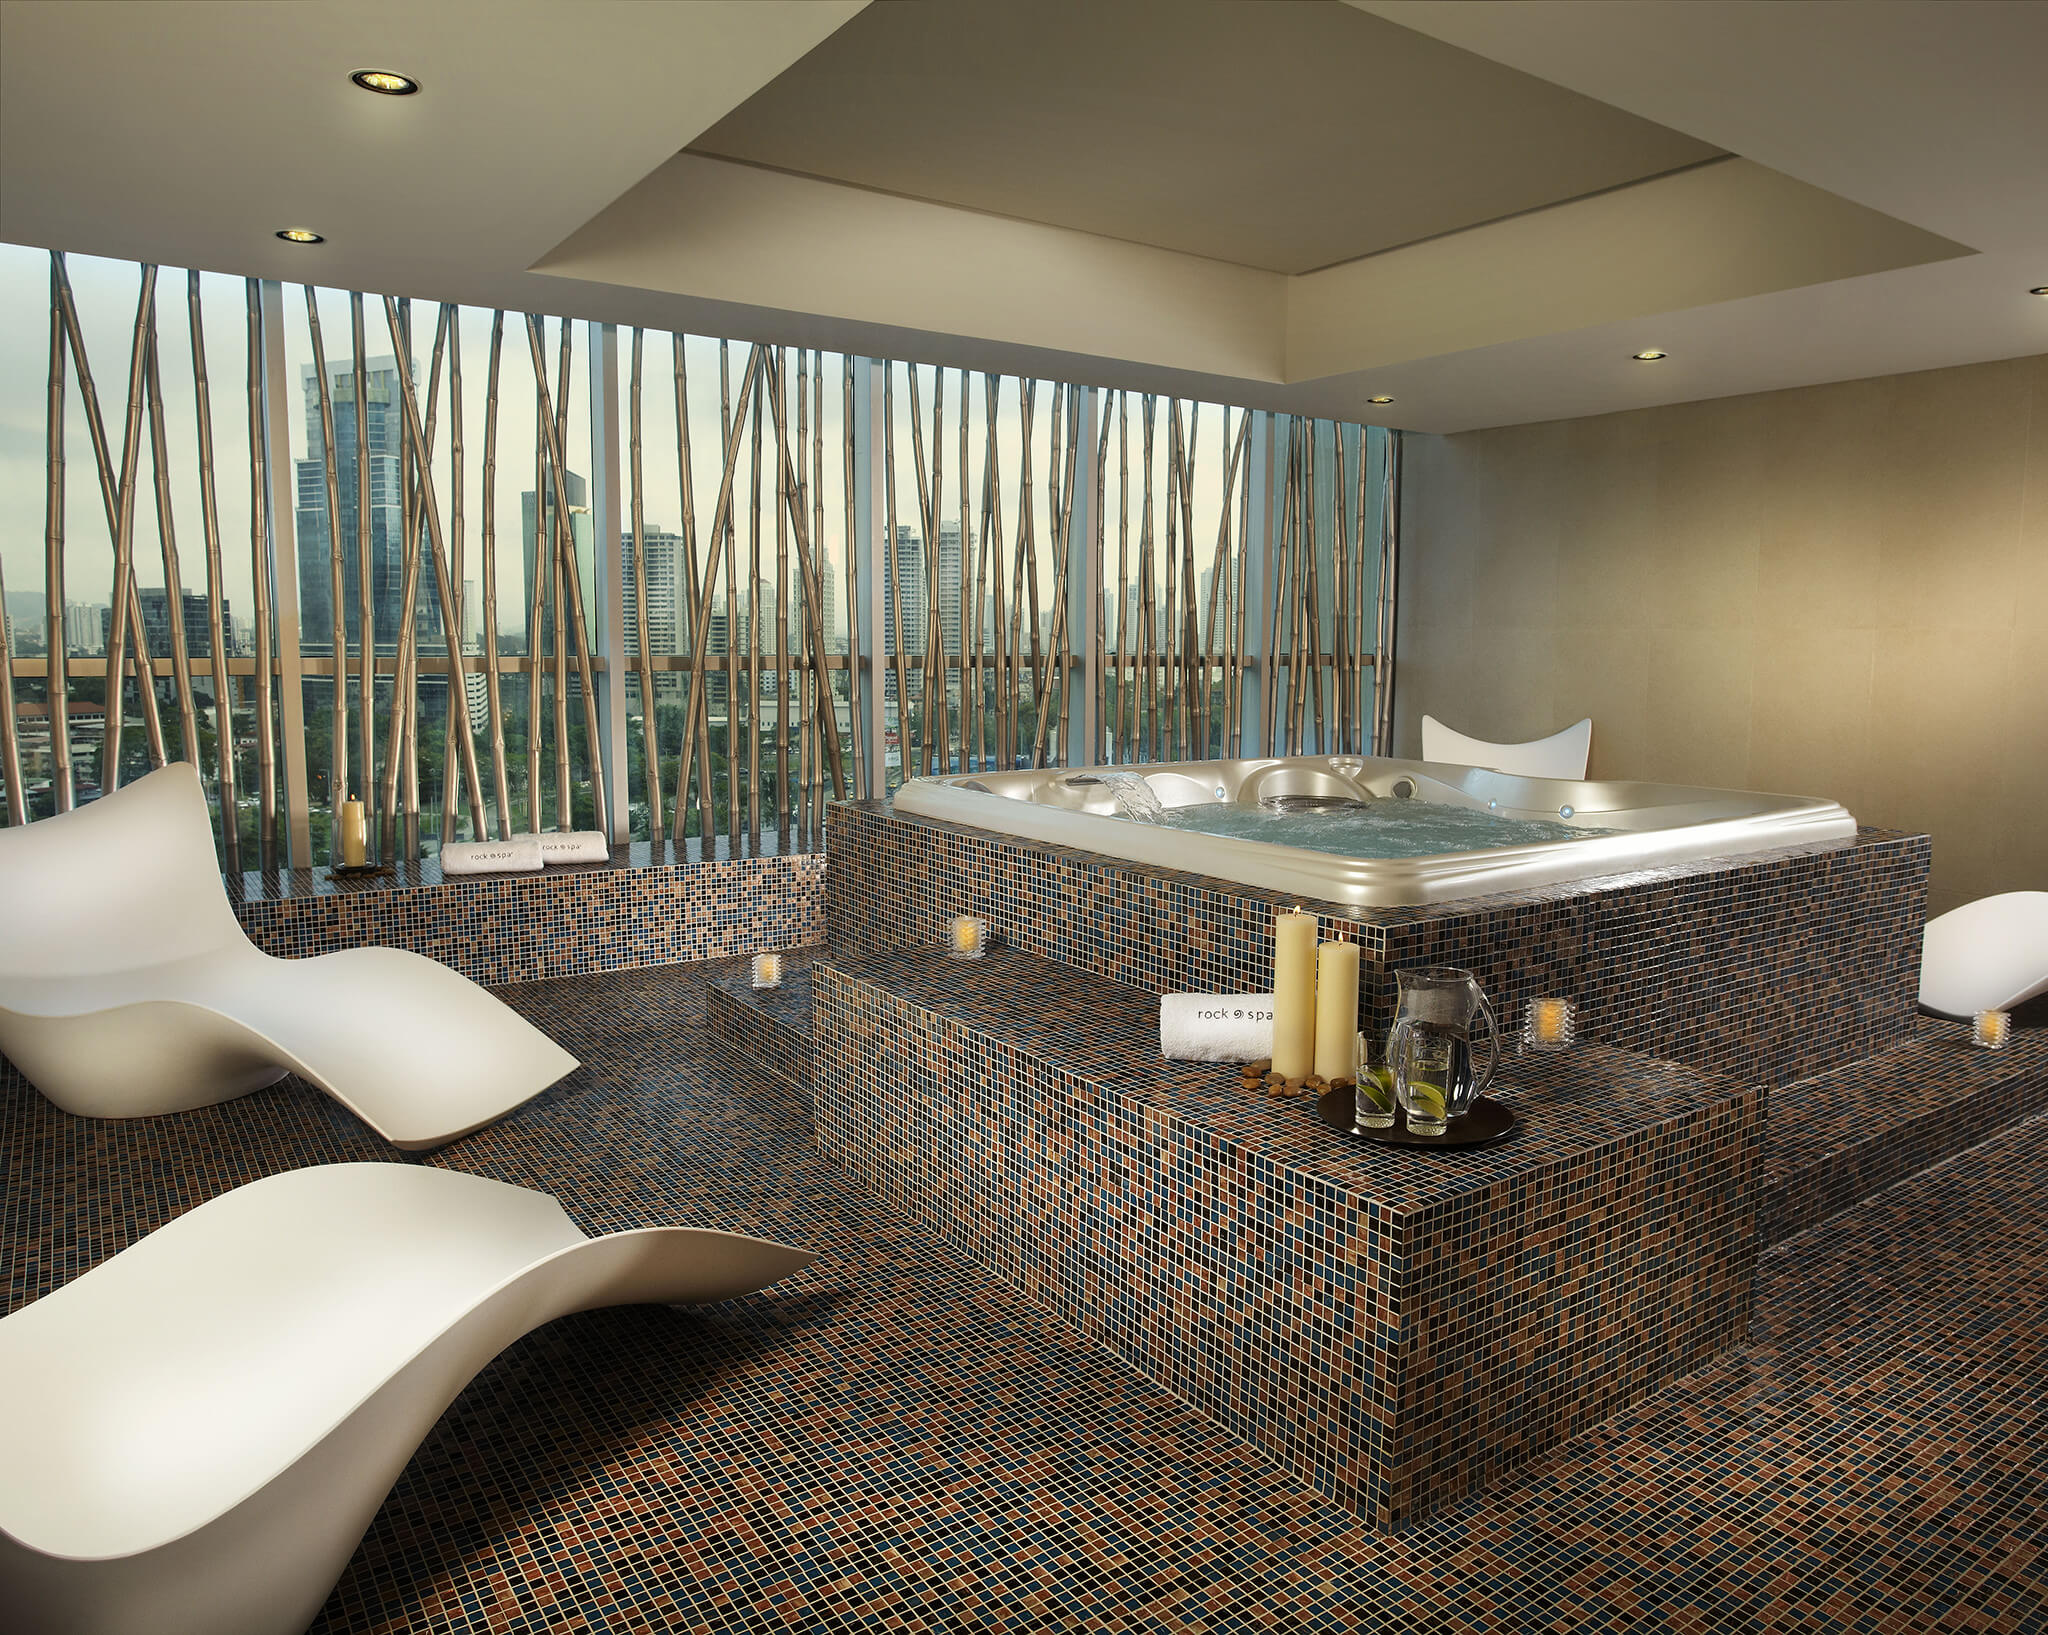 Spa at the Hard Rock Hotel in Panama